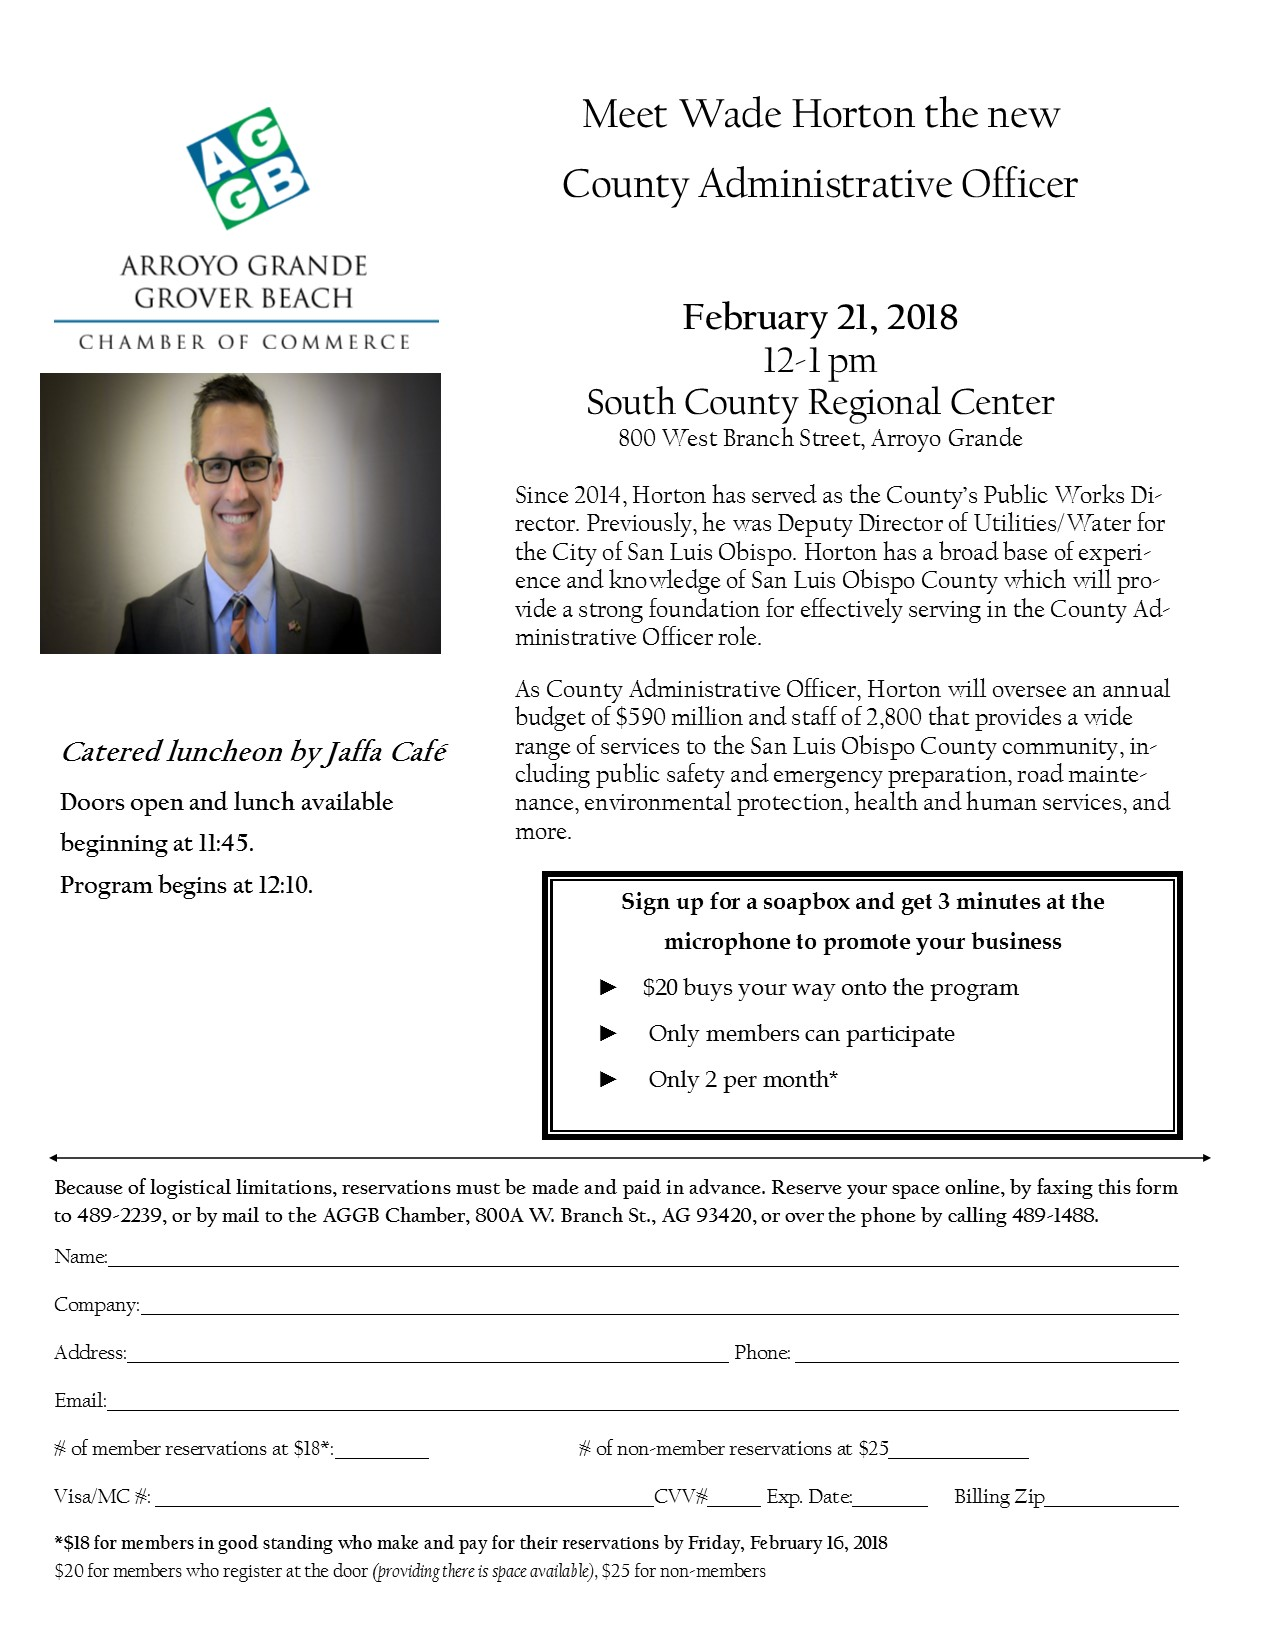 February 21, 2018 Chamber Luncheon with Wade Horton